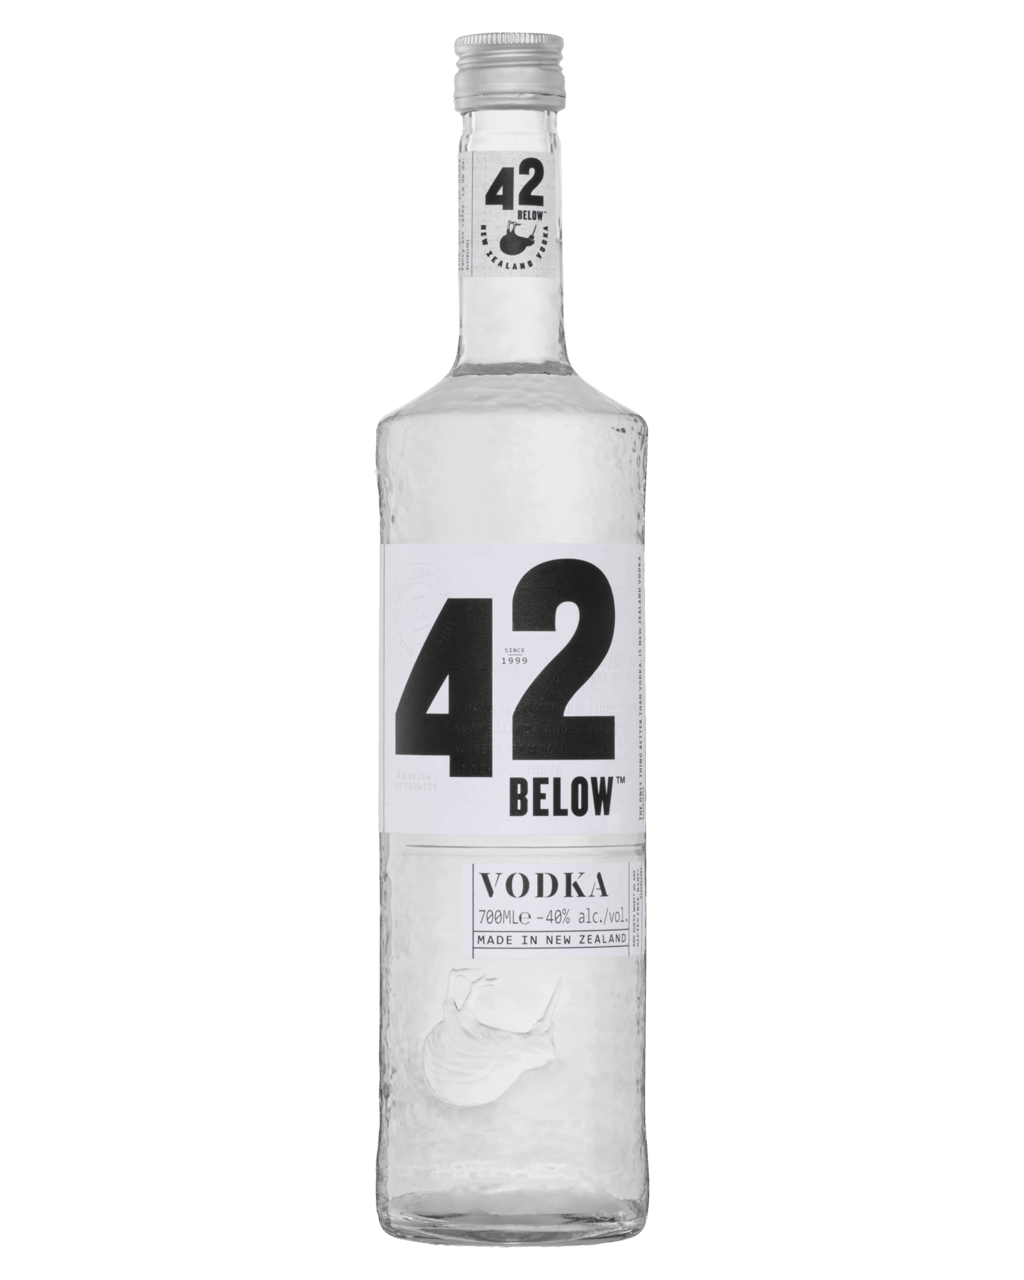 Buy 42 Below Vodka 700mL | Dan Murphy's